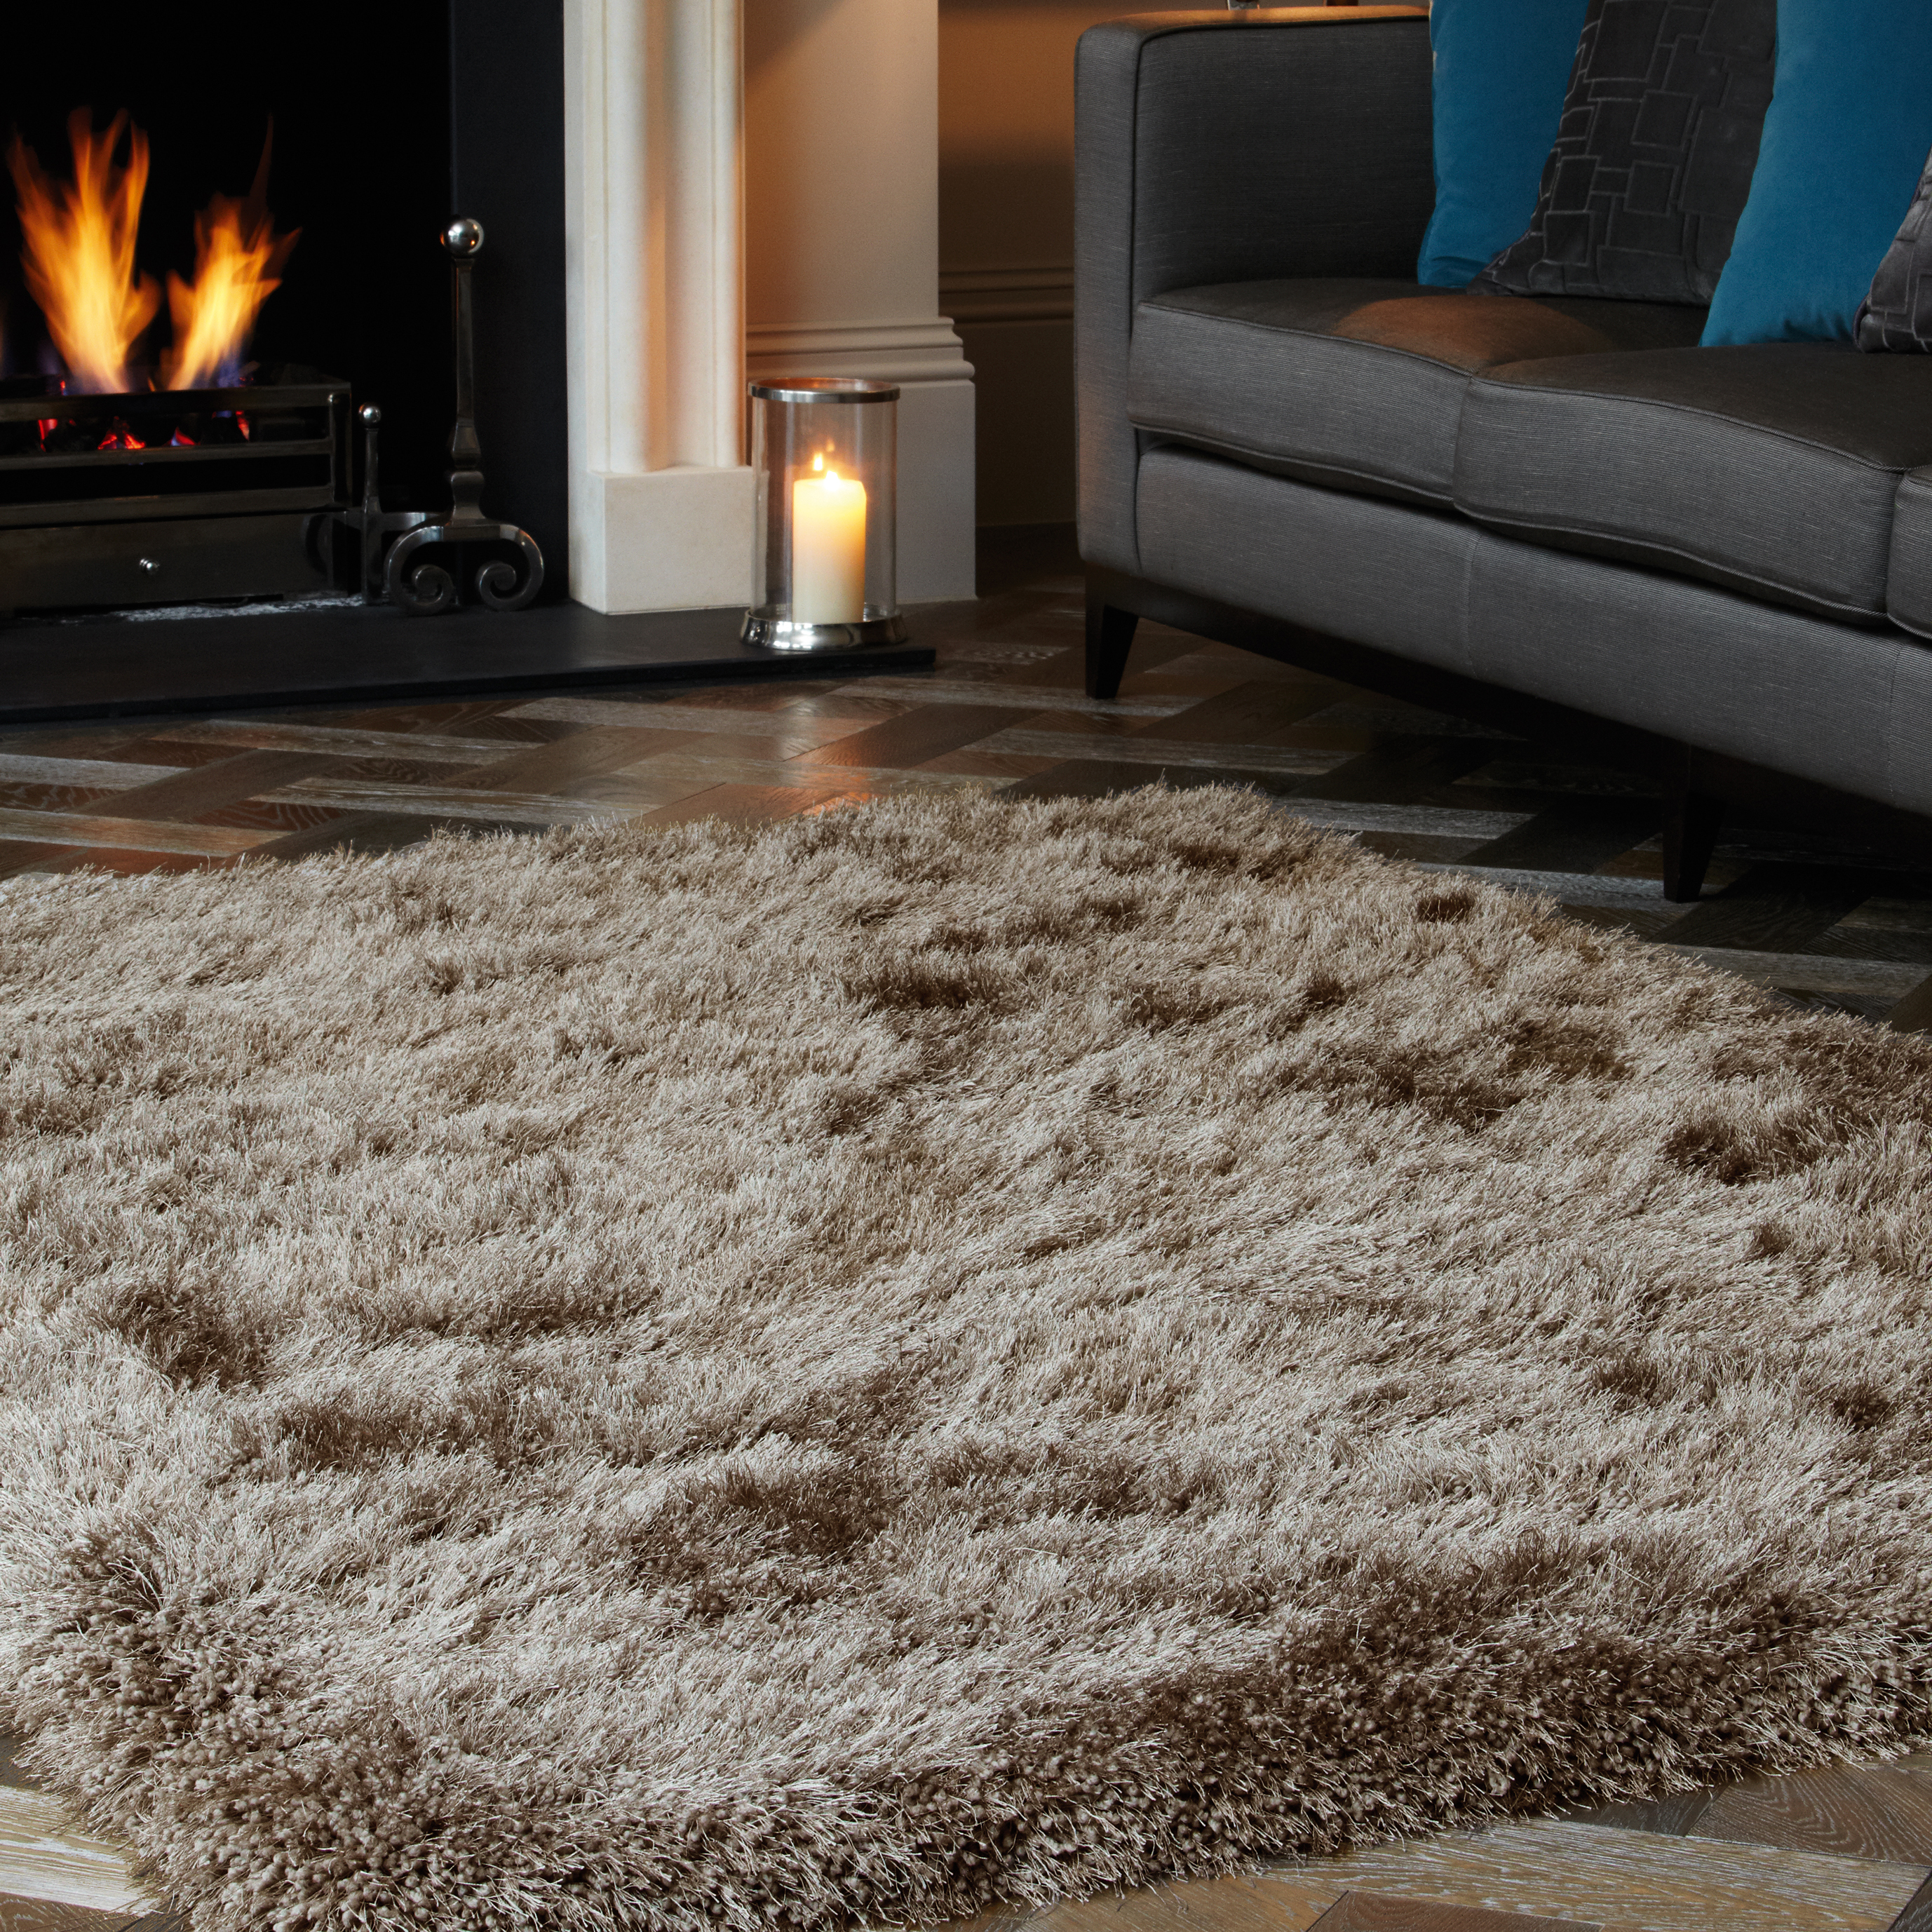 Cascade Shaggy Rugs With Luxurious Soft Textures